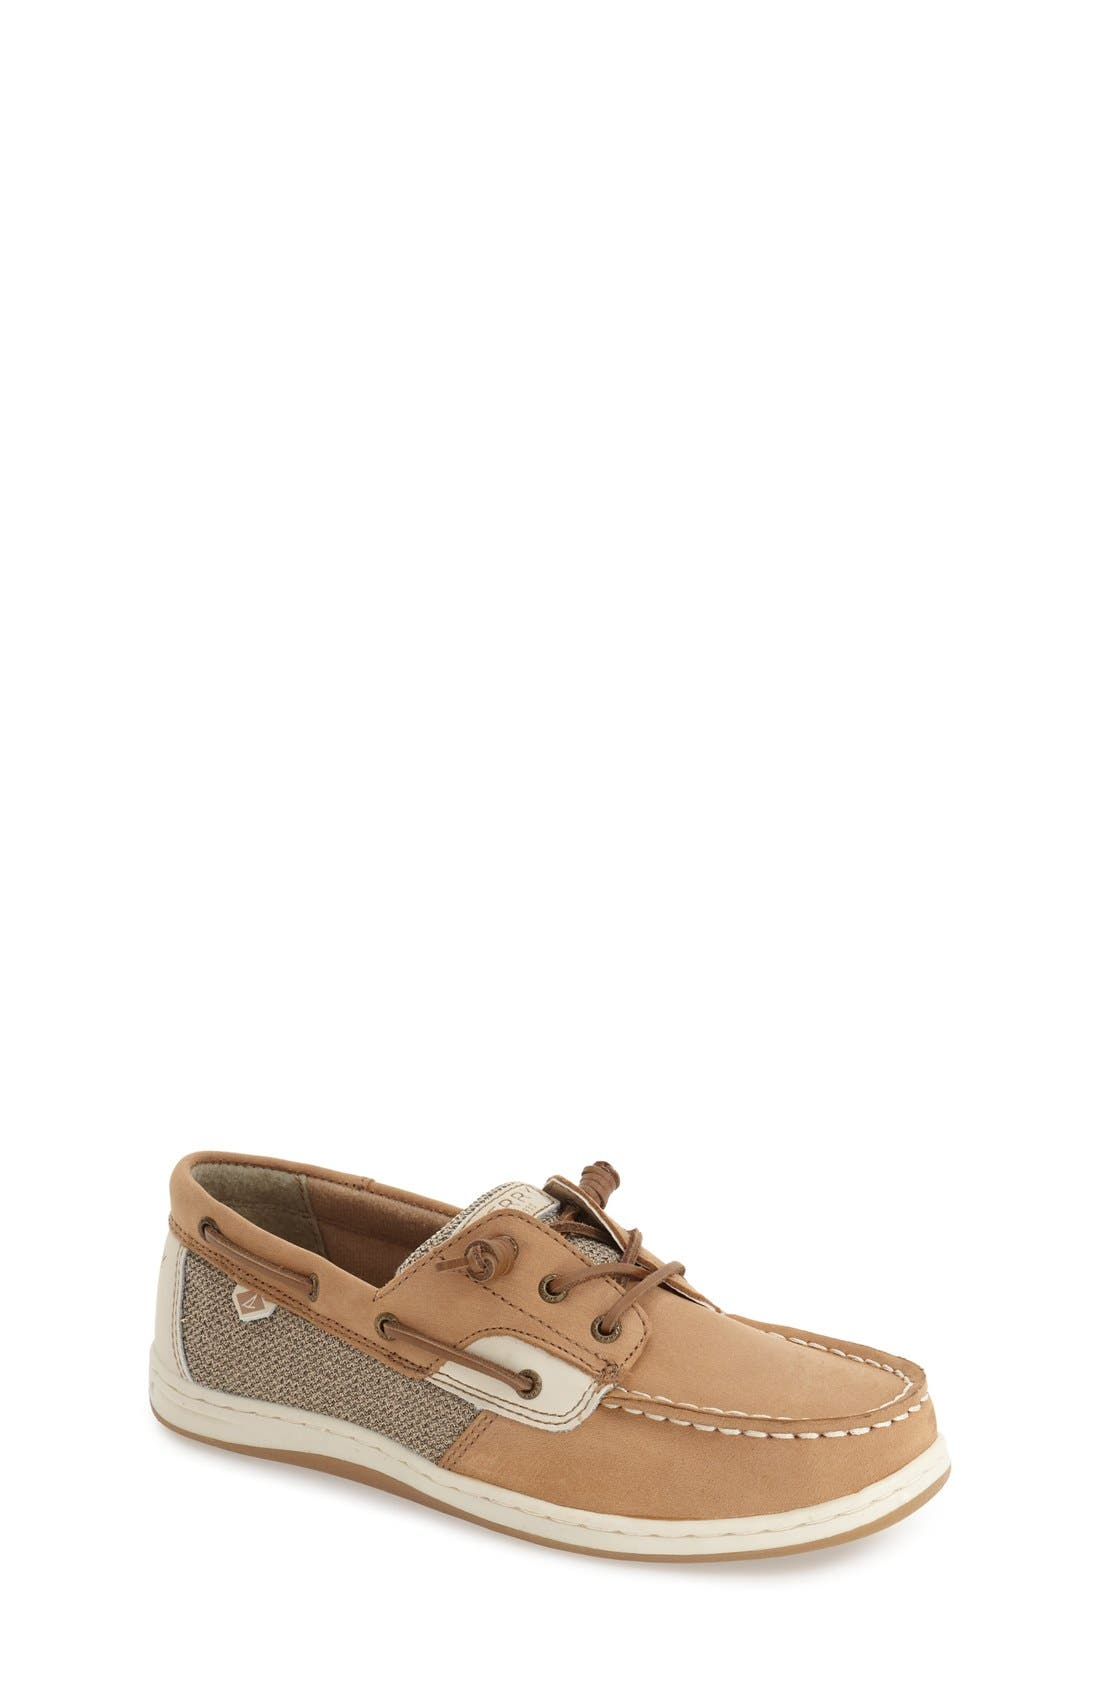 Sperry Kids 'Songfish' Boat Shoe